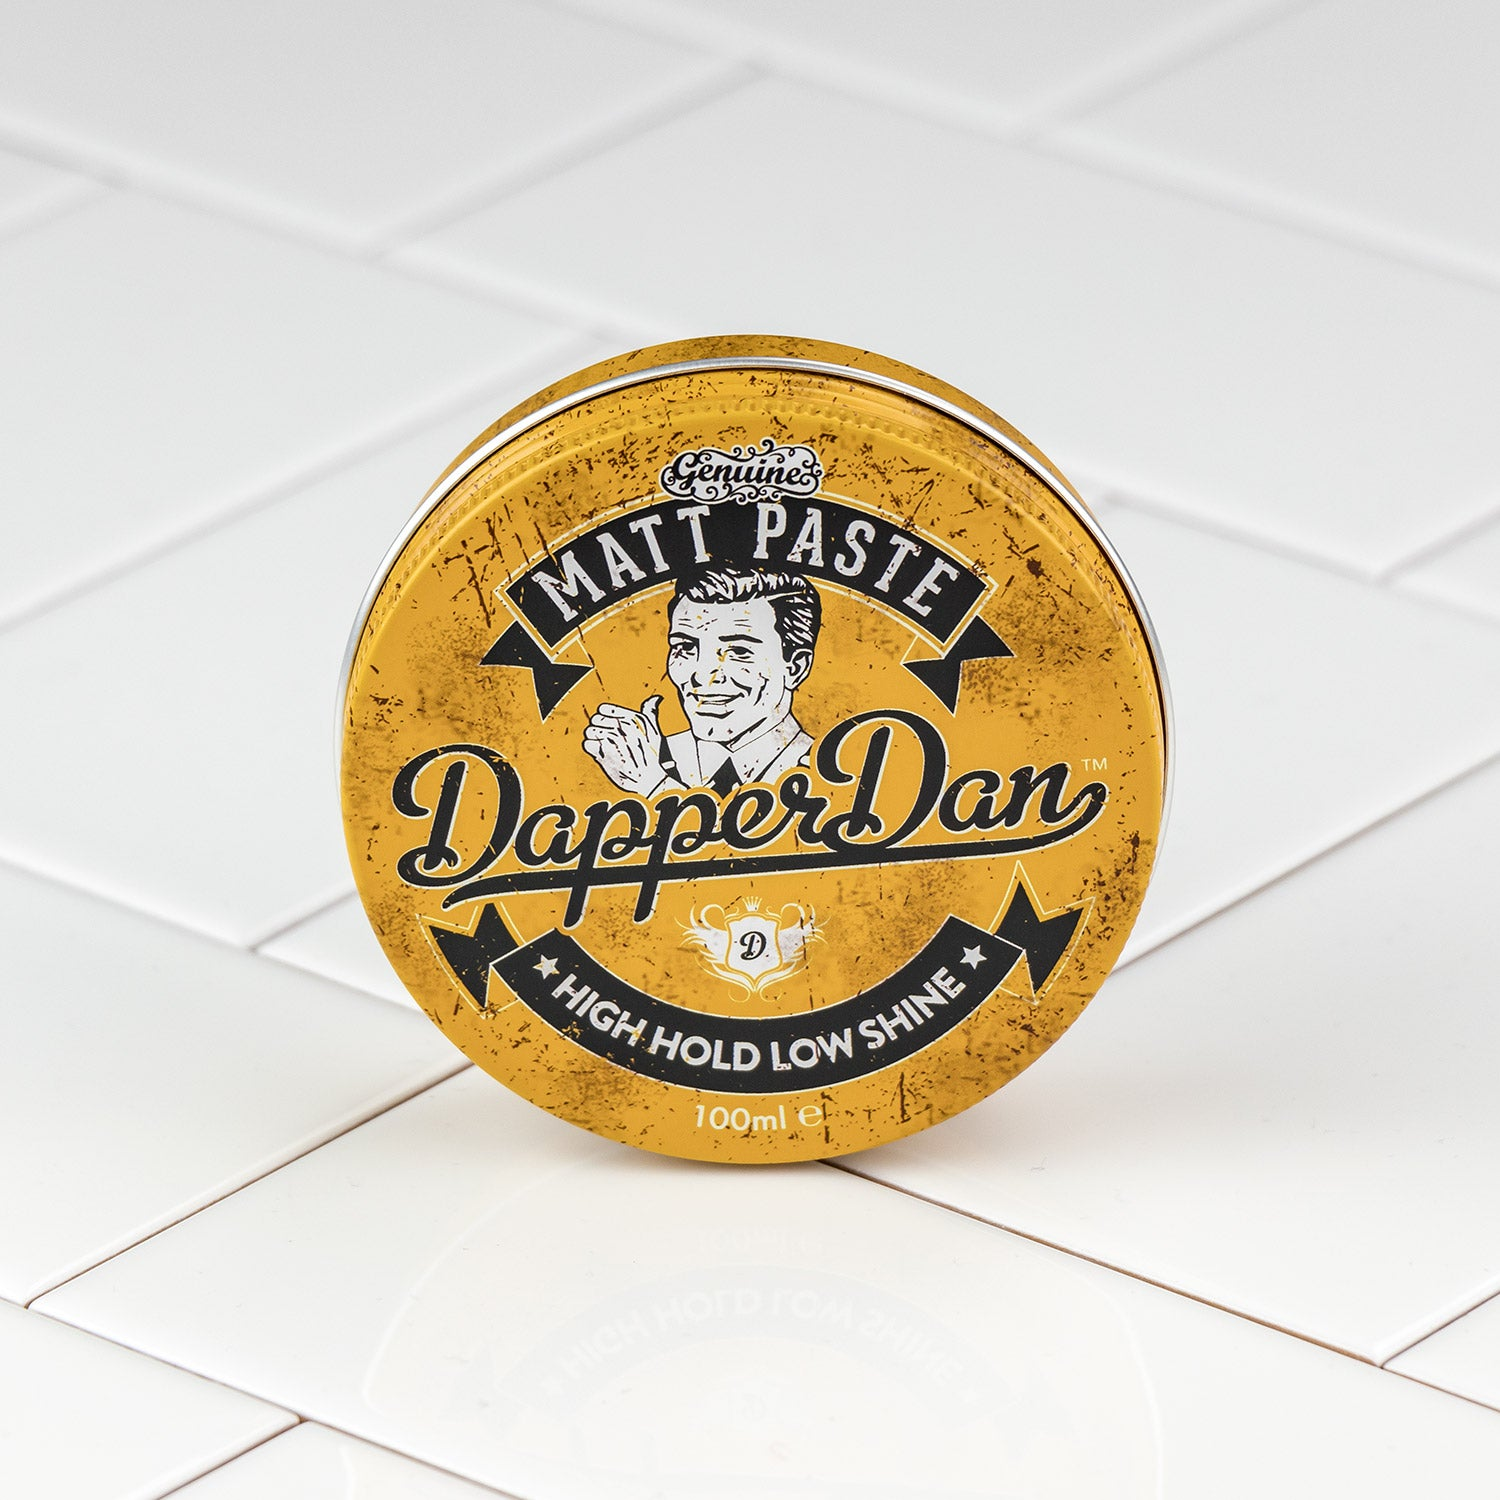 Dapper Dan Matt Paste, High Hold Low Shine (100ml/3.38oz)